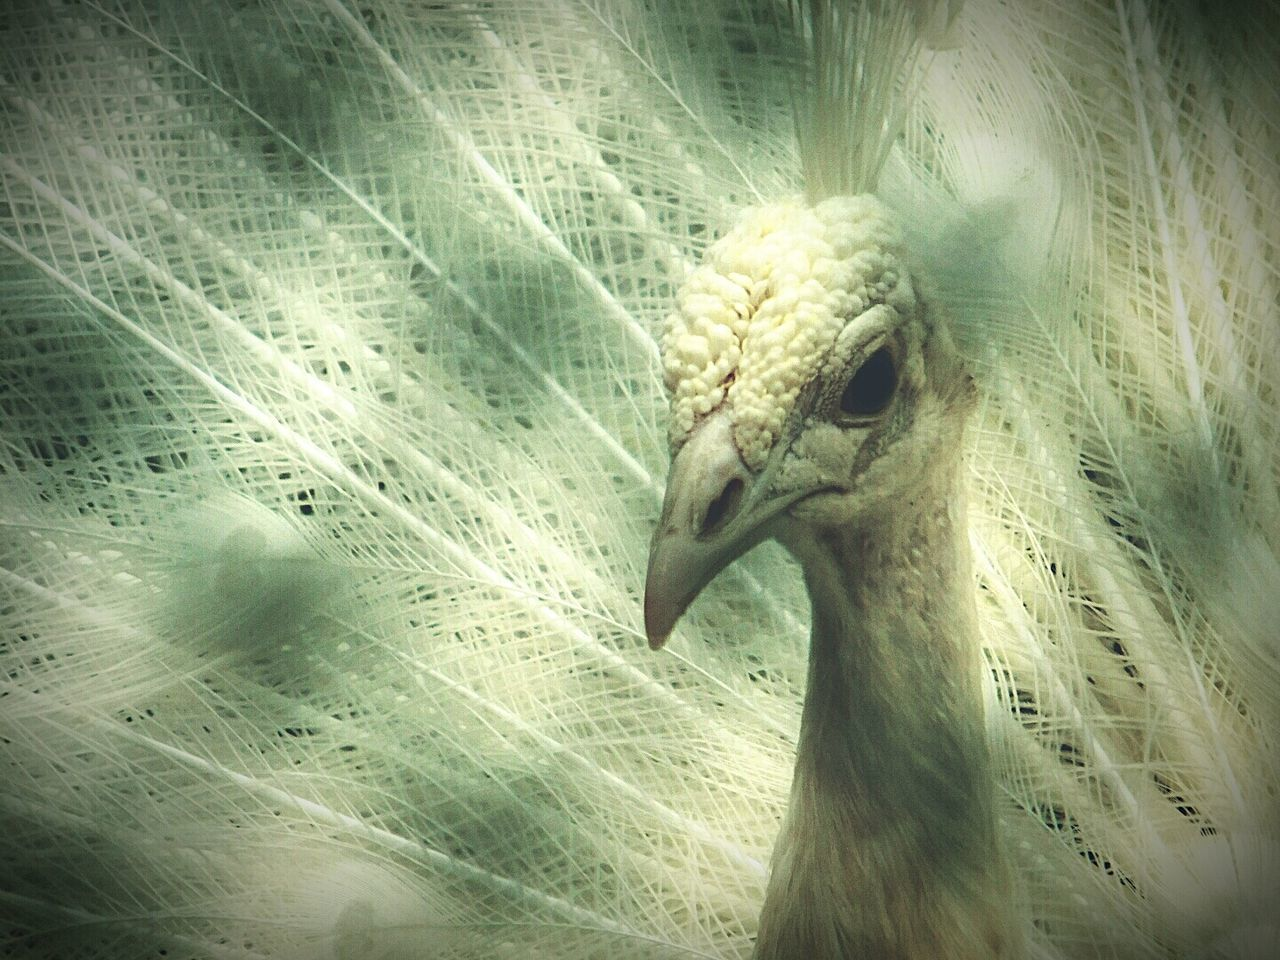 White Peacock Caged Looking For Freedom Sadness😢 Alone Looking At Camera Close-up Bird Wildlife Photography